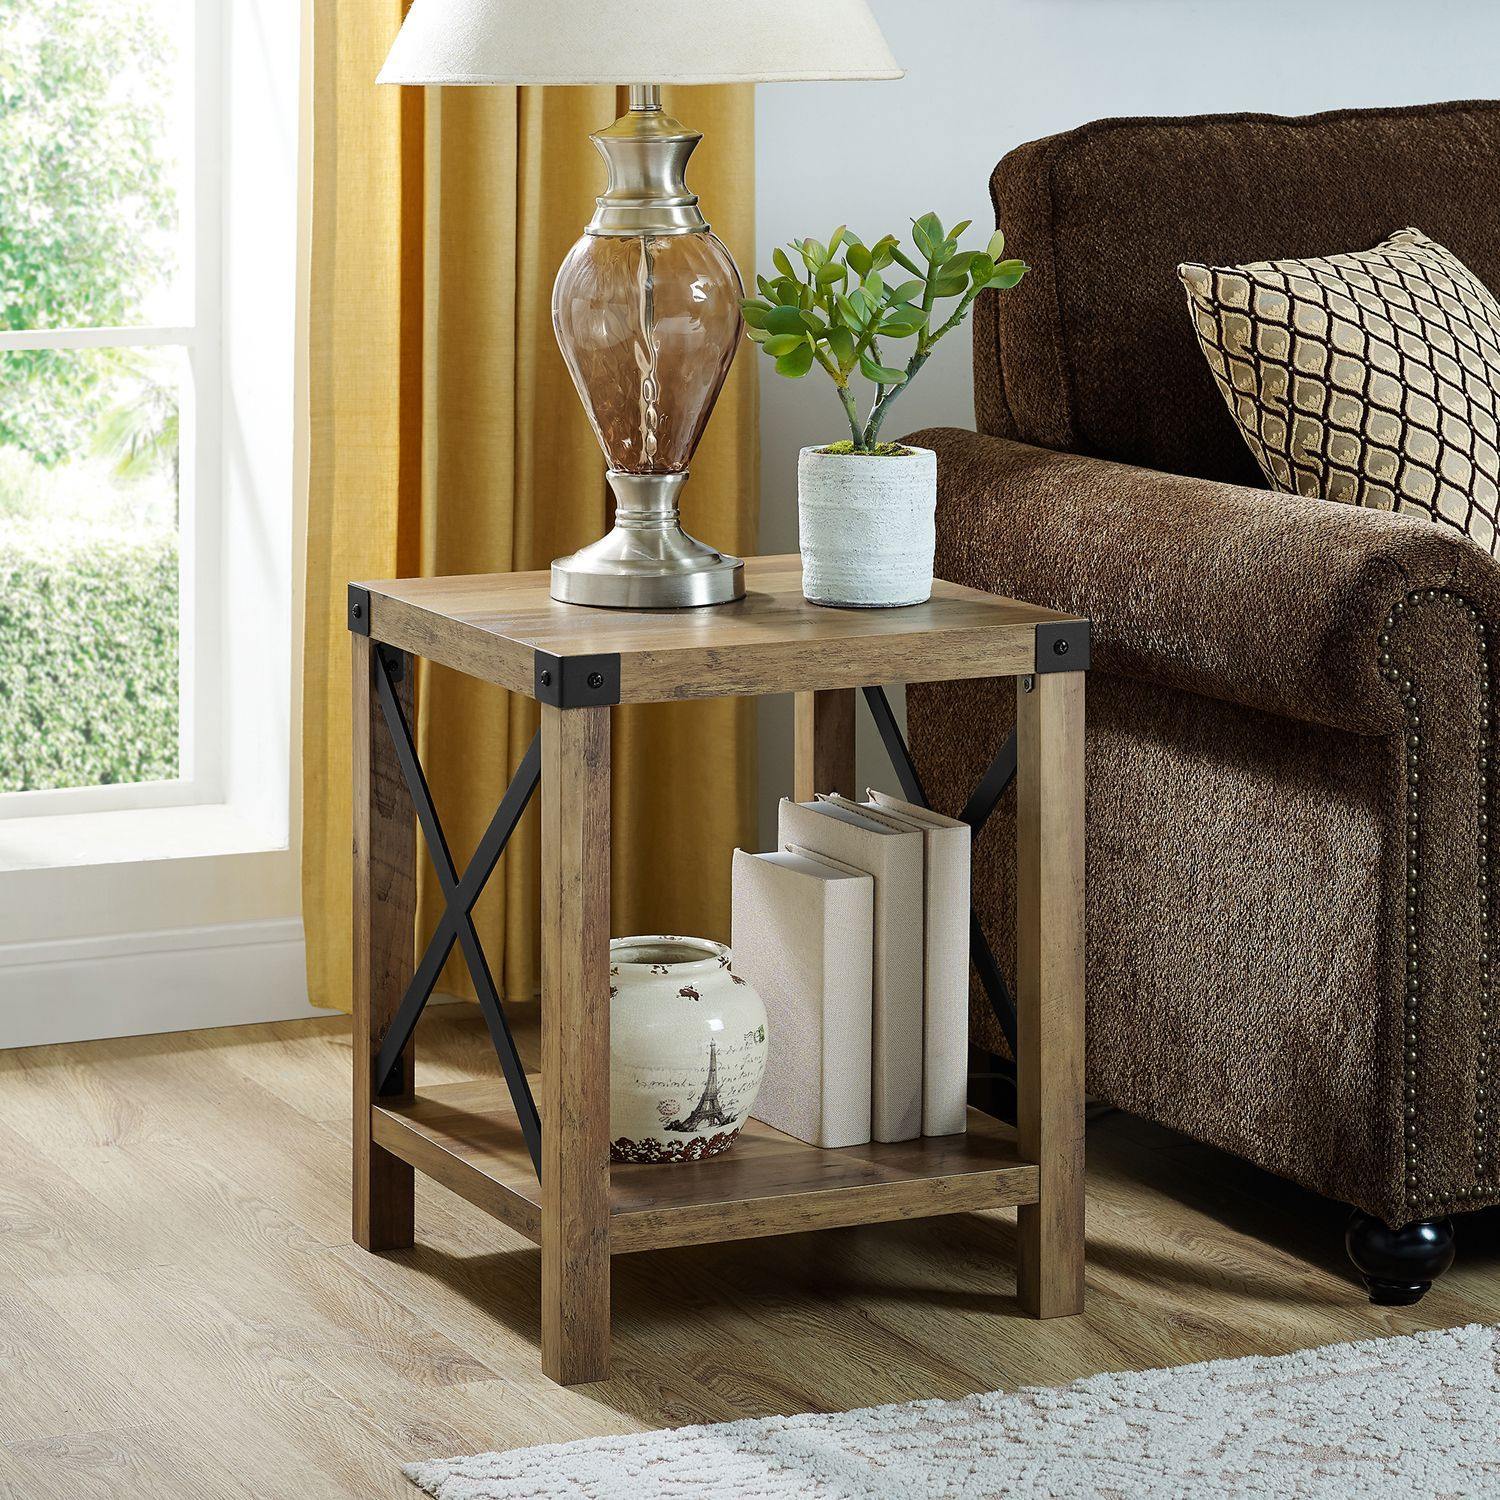 modern farmhouse rustic oak side table living room accent end outdoor recliner contemporary lamp shades kitchen island wheels leather sectional edmonton threshold mango wood